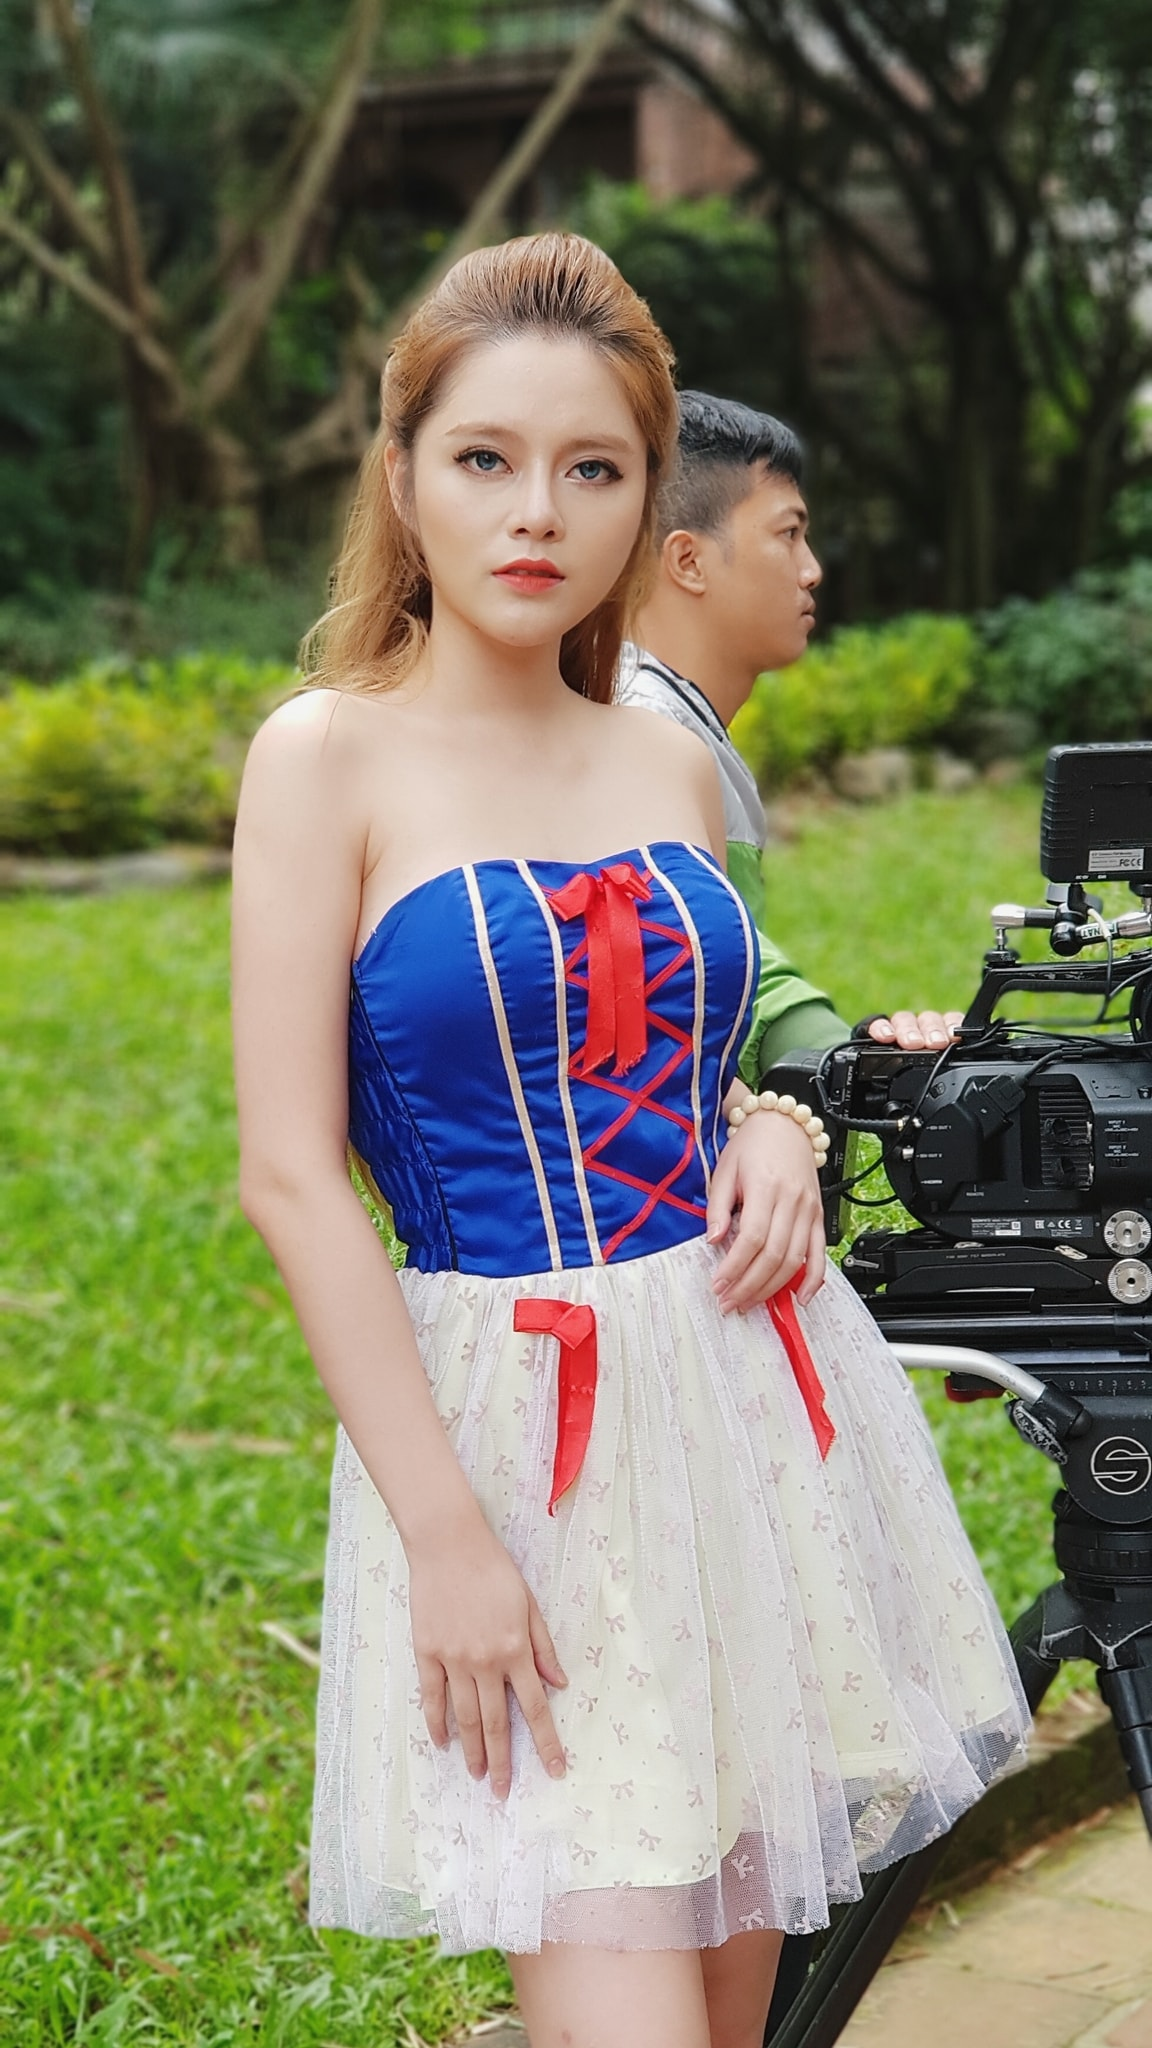 """hot girl nong cung world cup co canh hon gay """"nghen song"""" vtv khoe vong eo 53cm hinh anh 11"""